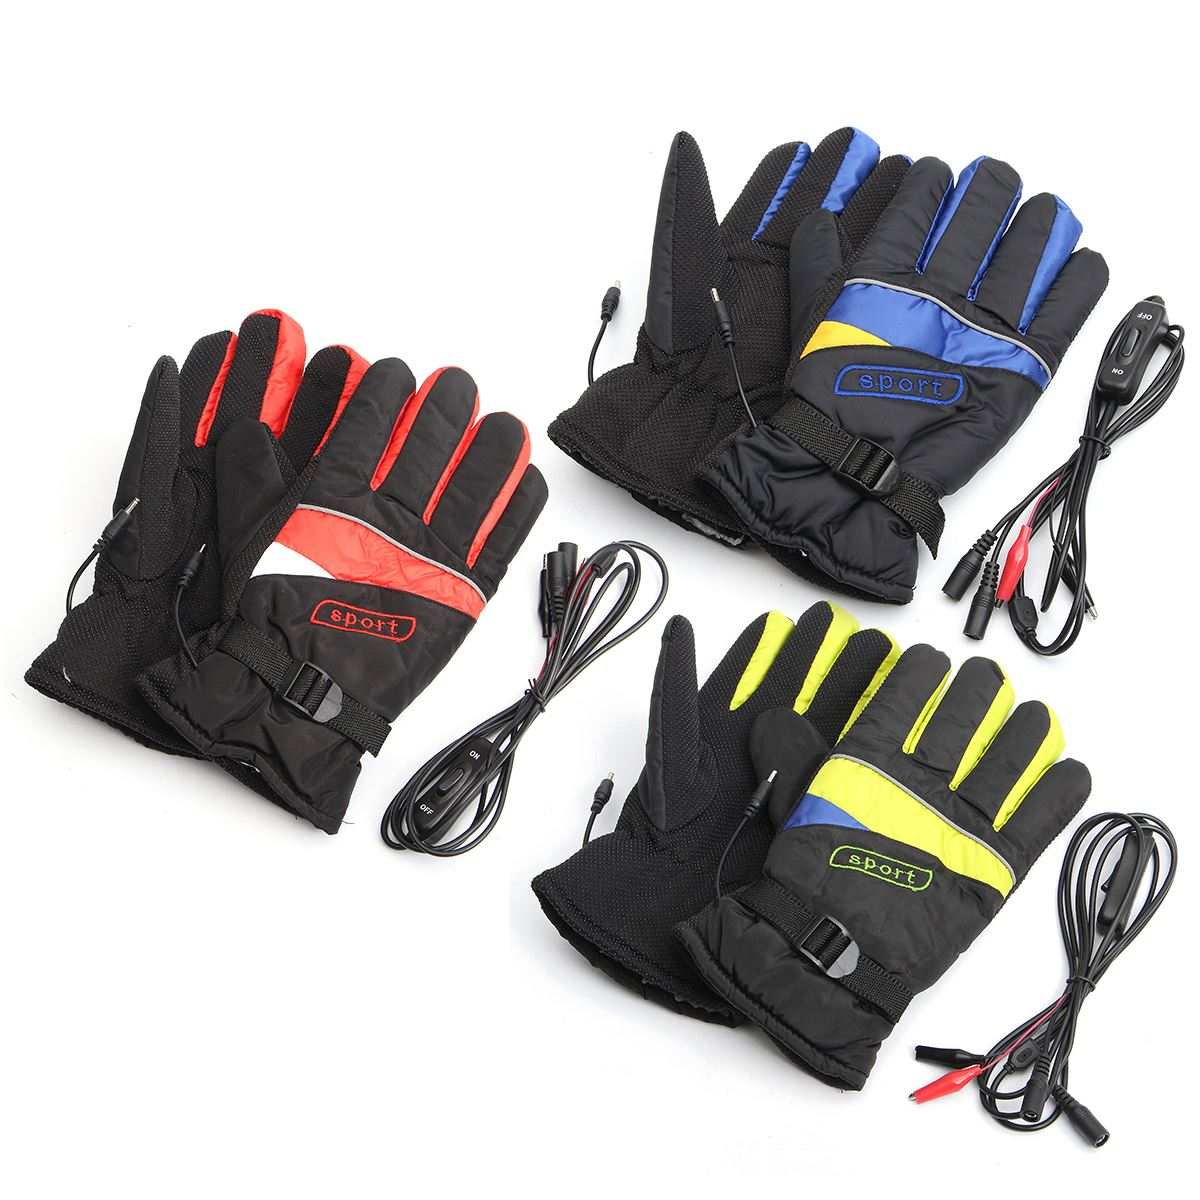 Motorcycle gloves heated battery - Gloves Electric Heating Outdoor Li Ion Battery Motorcycle Bicycle Hunting Winter Warmer Dc 12v A